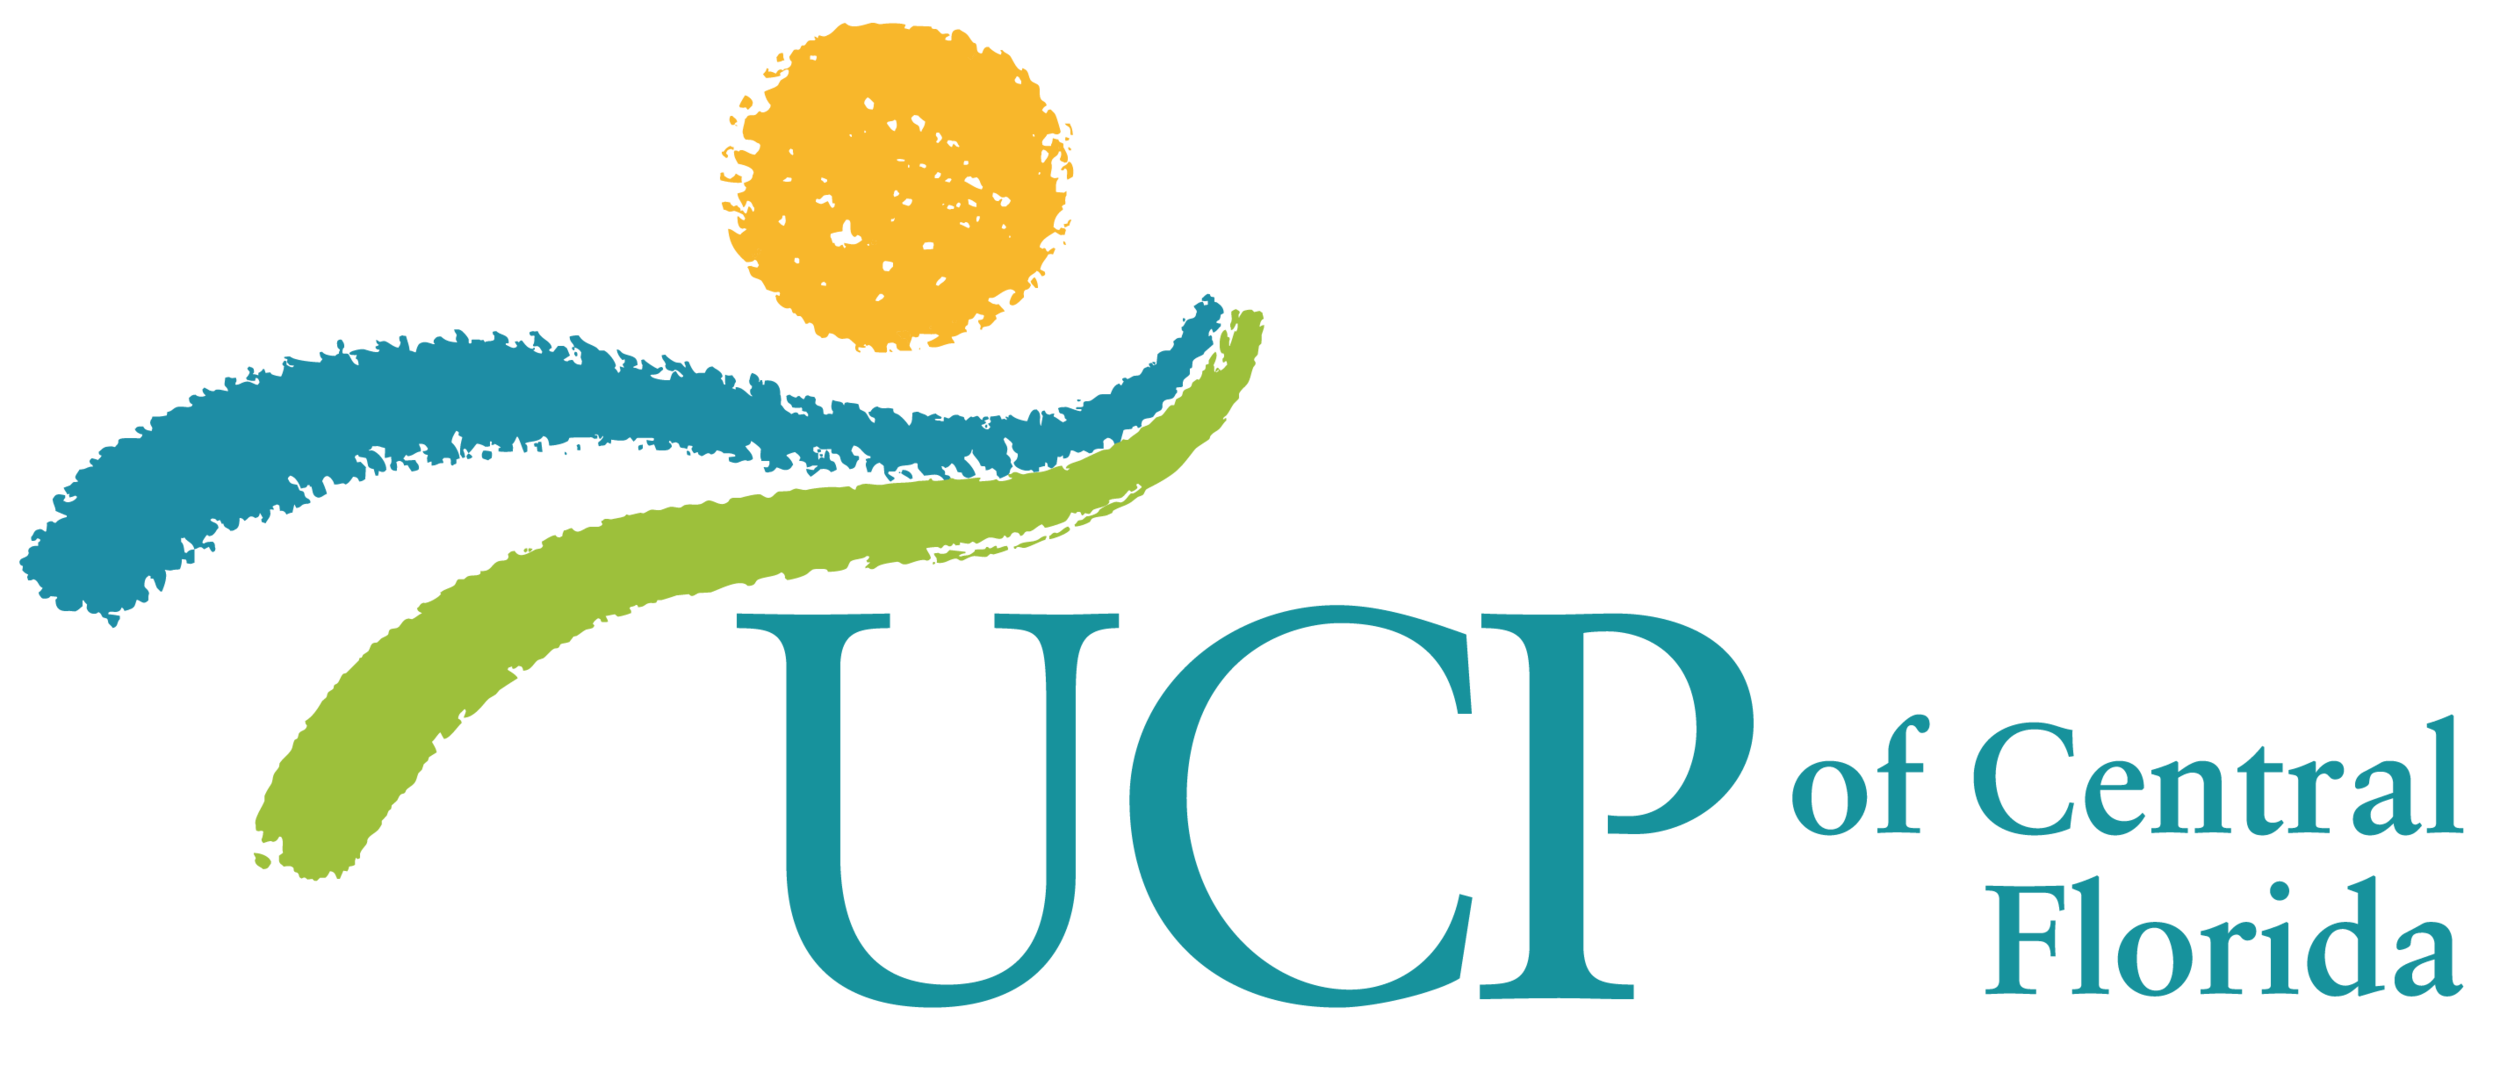 PRESS RELEASE - UCP of Central Florida launches 21st Century Community Learning Center through DOE Grant